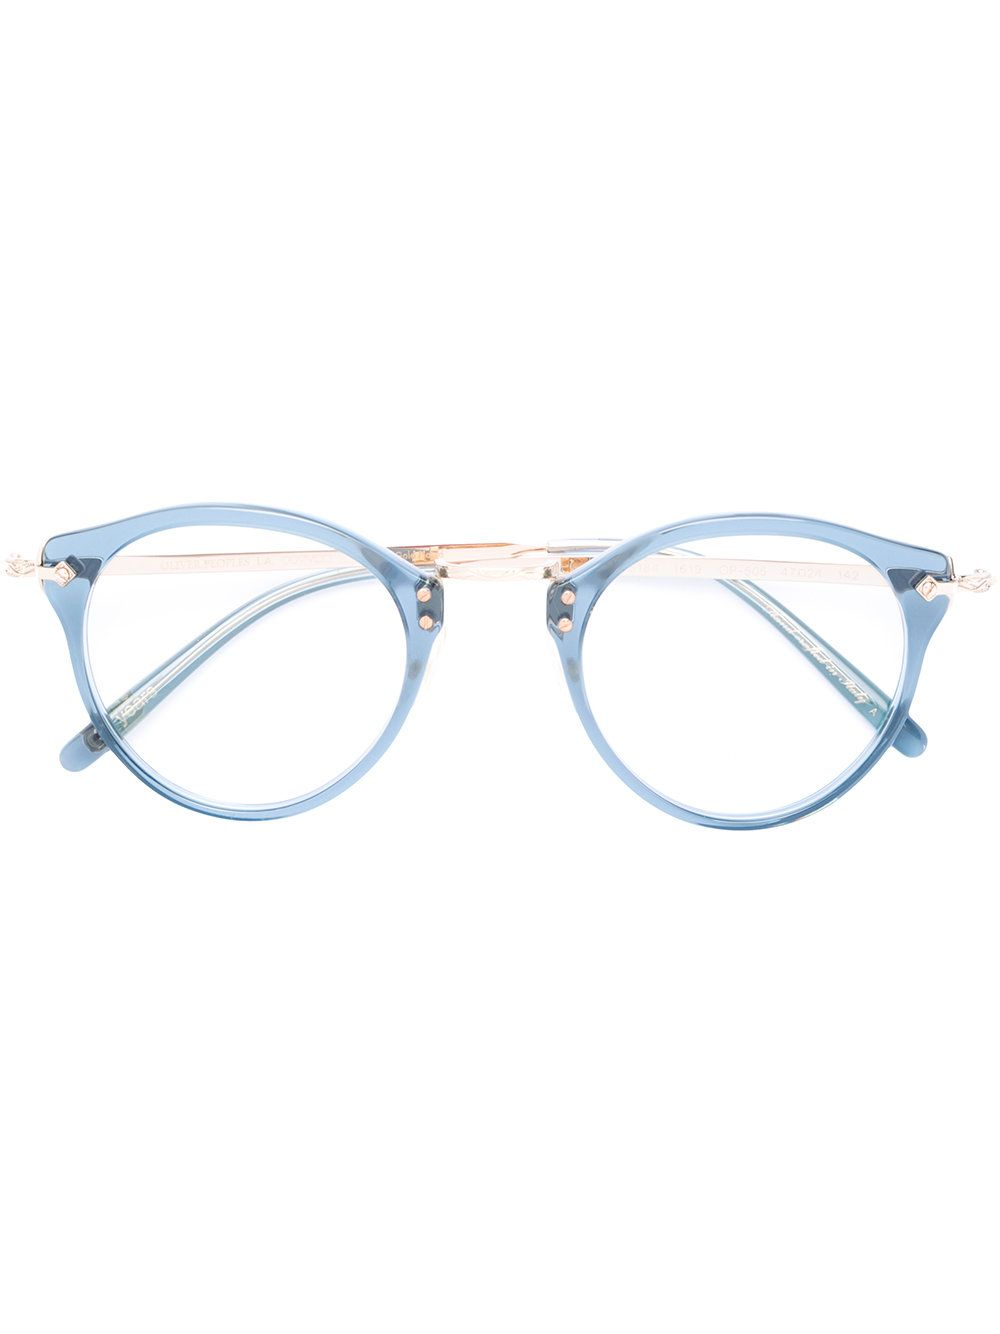 6549fc55d0ae Oliver Peoples round-frame Glasses in 2019